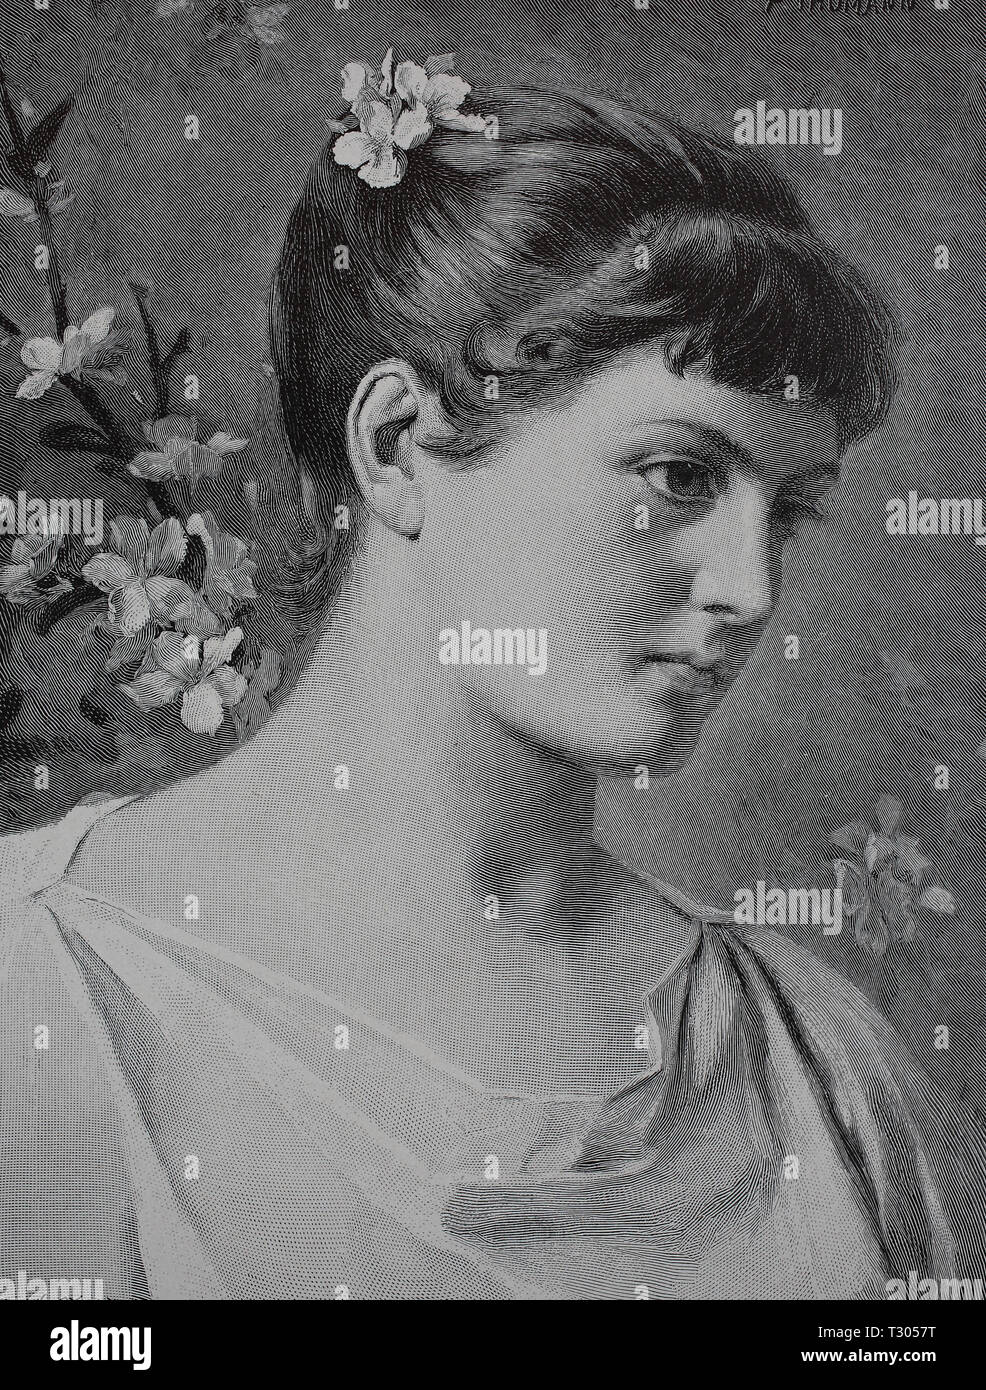 Digital improved reproduction, Girls with apple blossoms in the hair and in the background, Mädchen mit Apfelblüten im Haar und im Hintergrund, from an original print from the 19th century Stock Photo